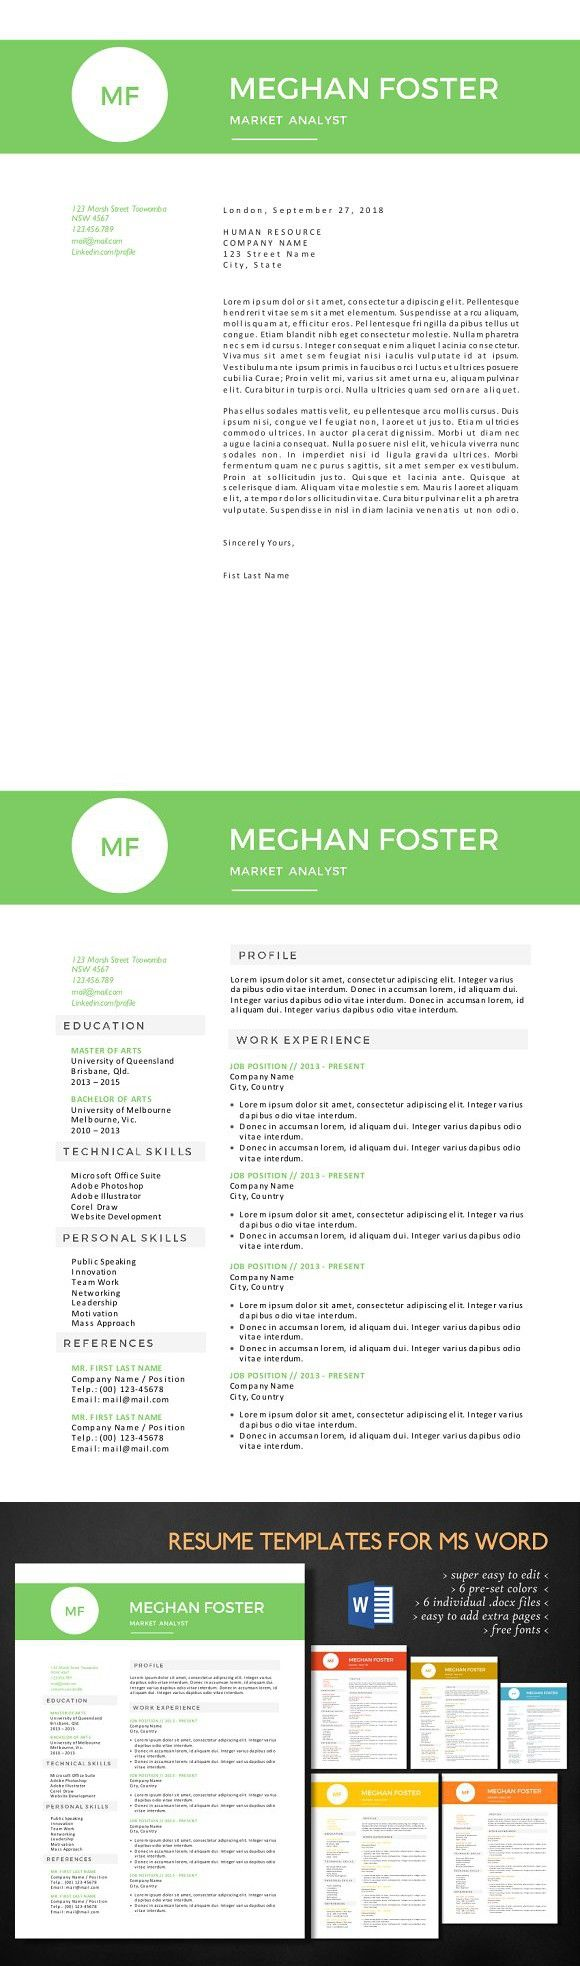 Clean 2 in 1 docx resume resumedesignformsword